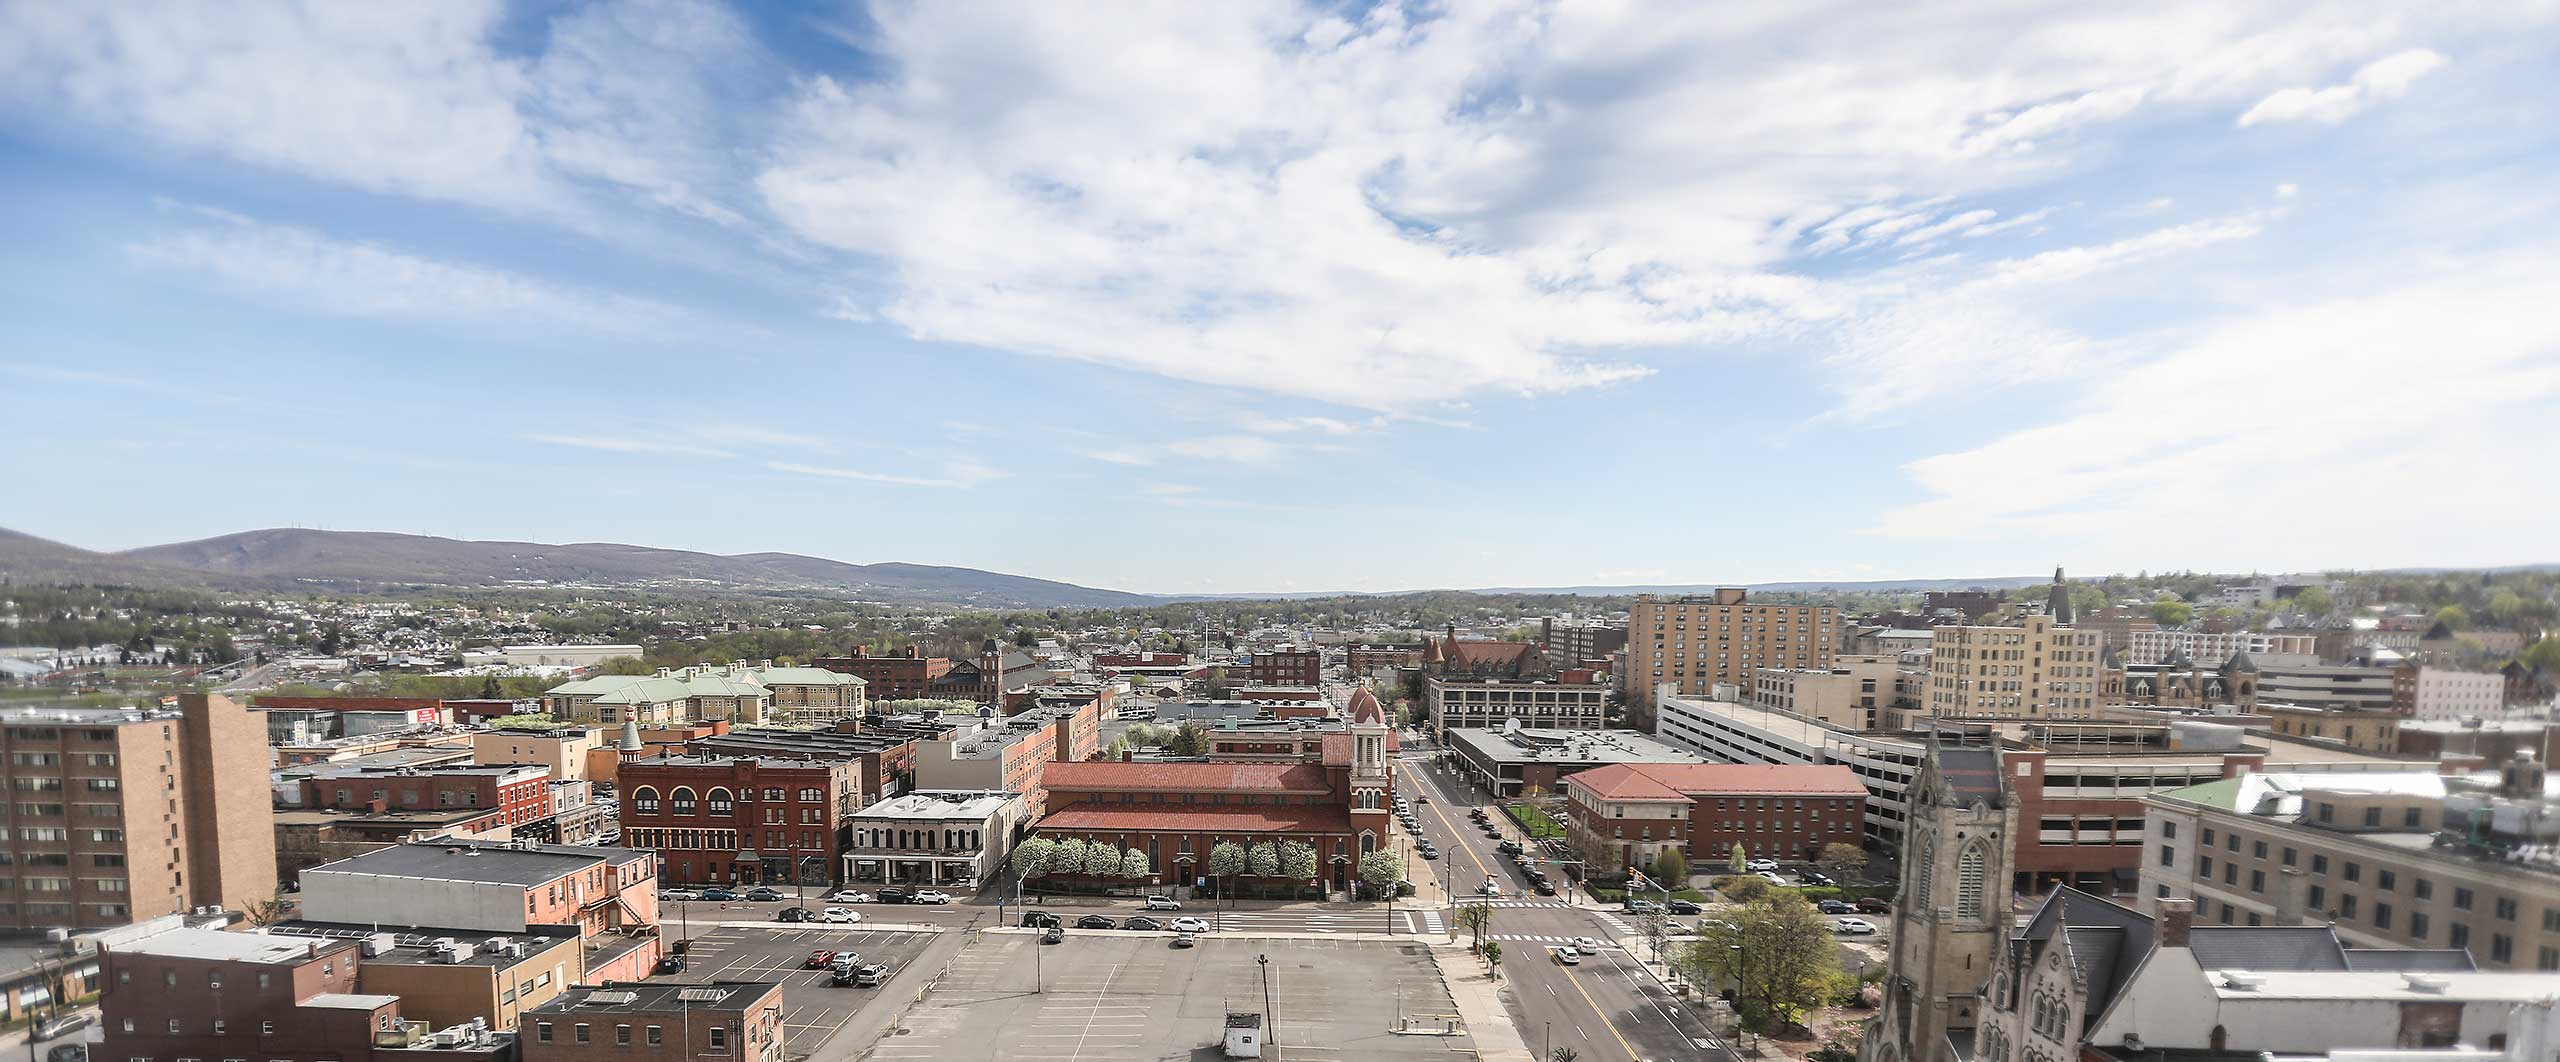 Aerial view of downtown Scranton properties